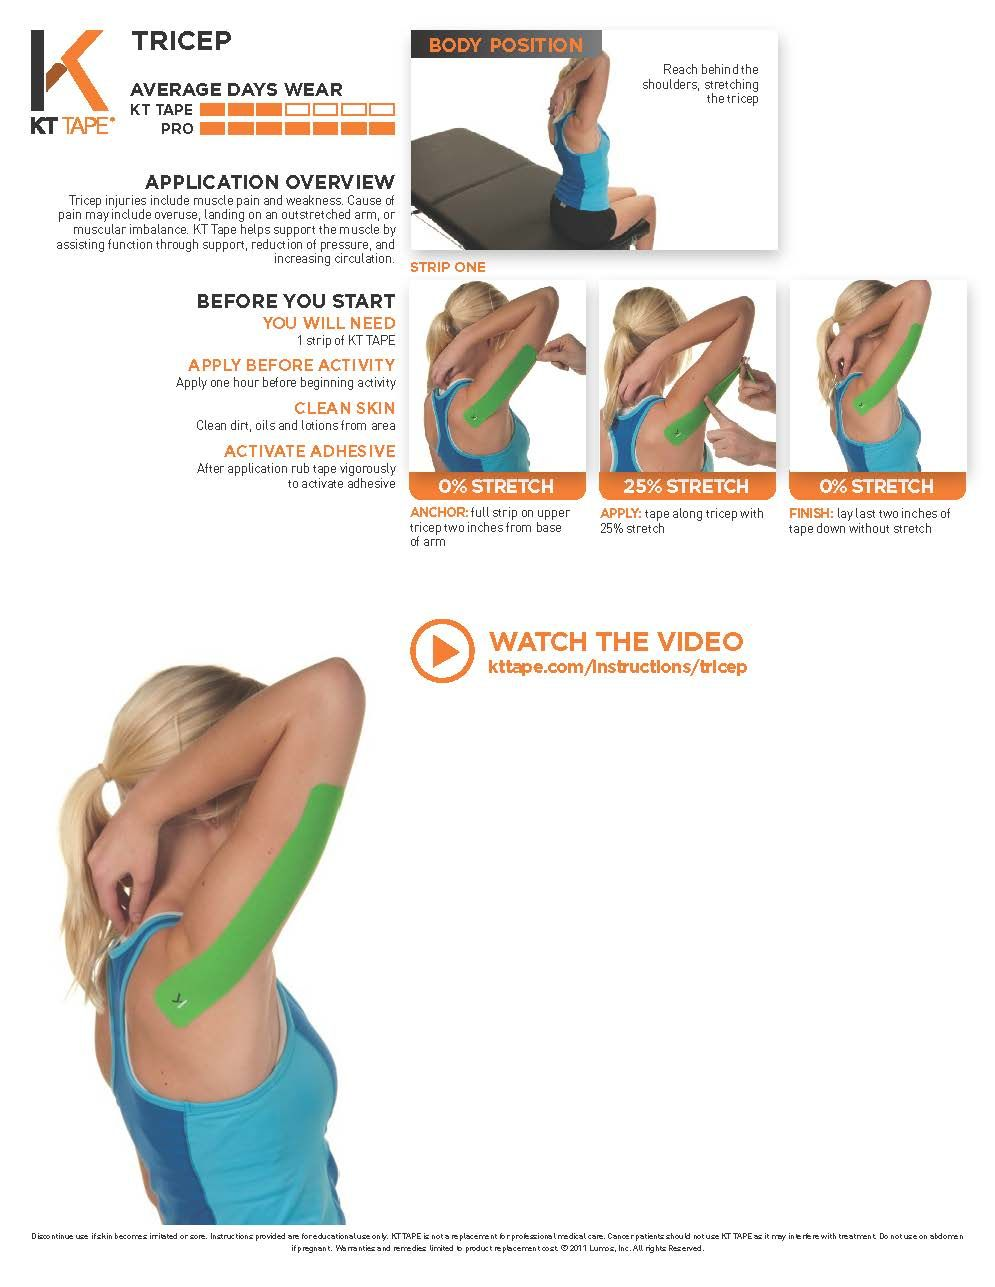 Tricep Kt Tape Helps Support The Muscle By Assisting Function Through Support Reduction Of Pressure And Increasing Ci Kinesiology Taping Tape Kinesio Taping